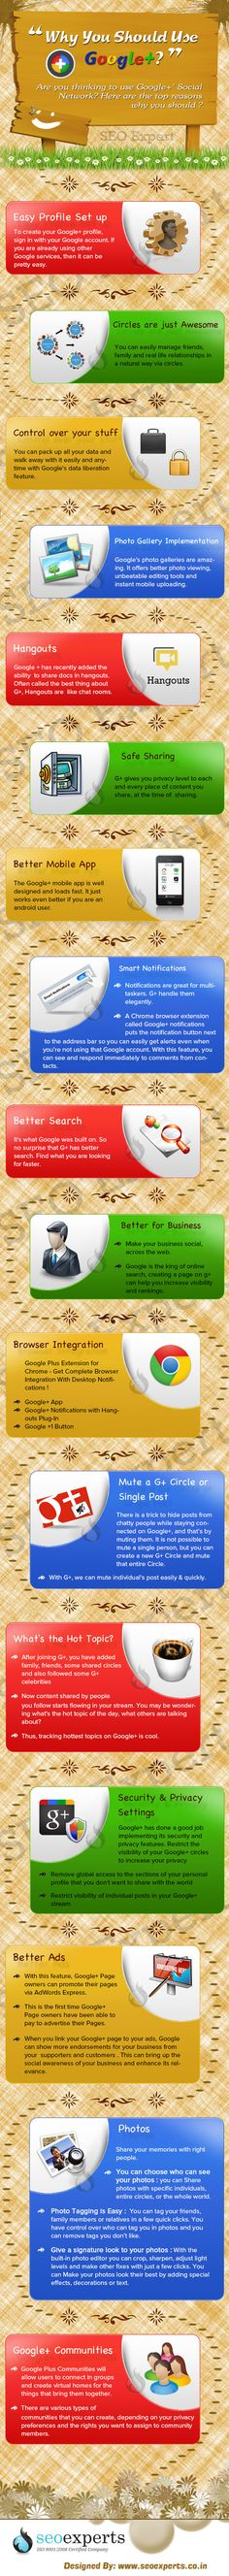 Why You Should be Using Google+ - Here's the Reasons Why! [Infographic] #googleplus #socialmedia #marketing